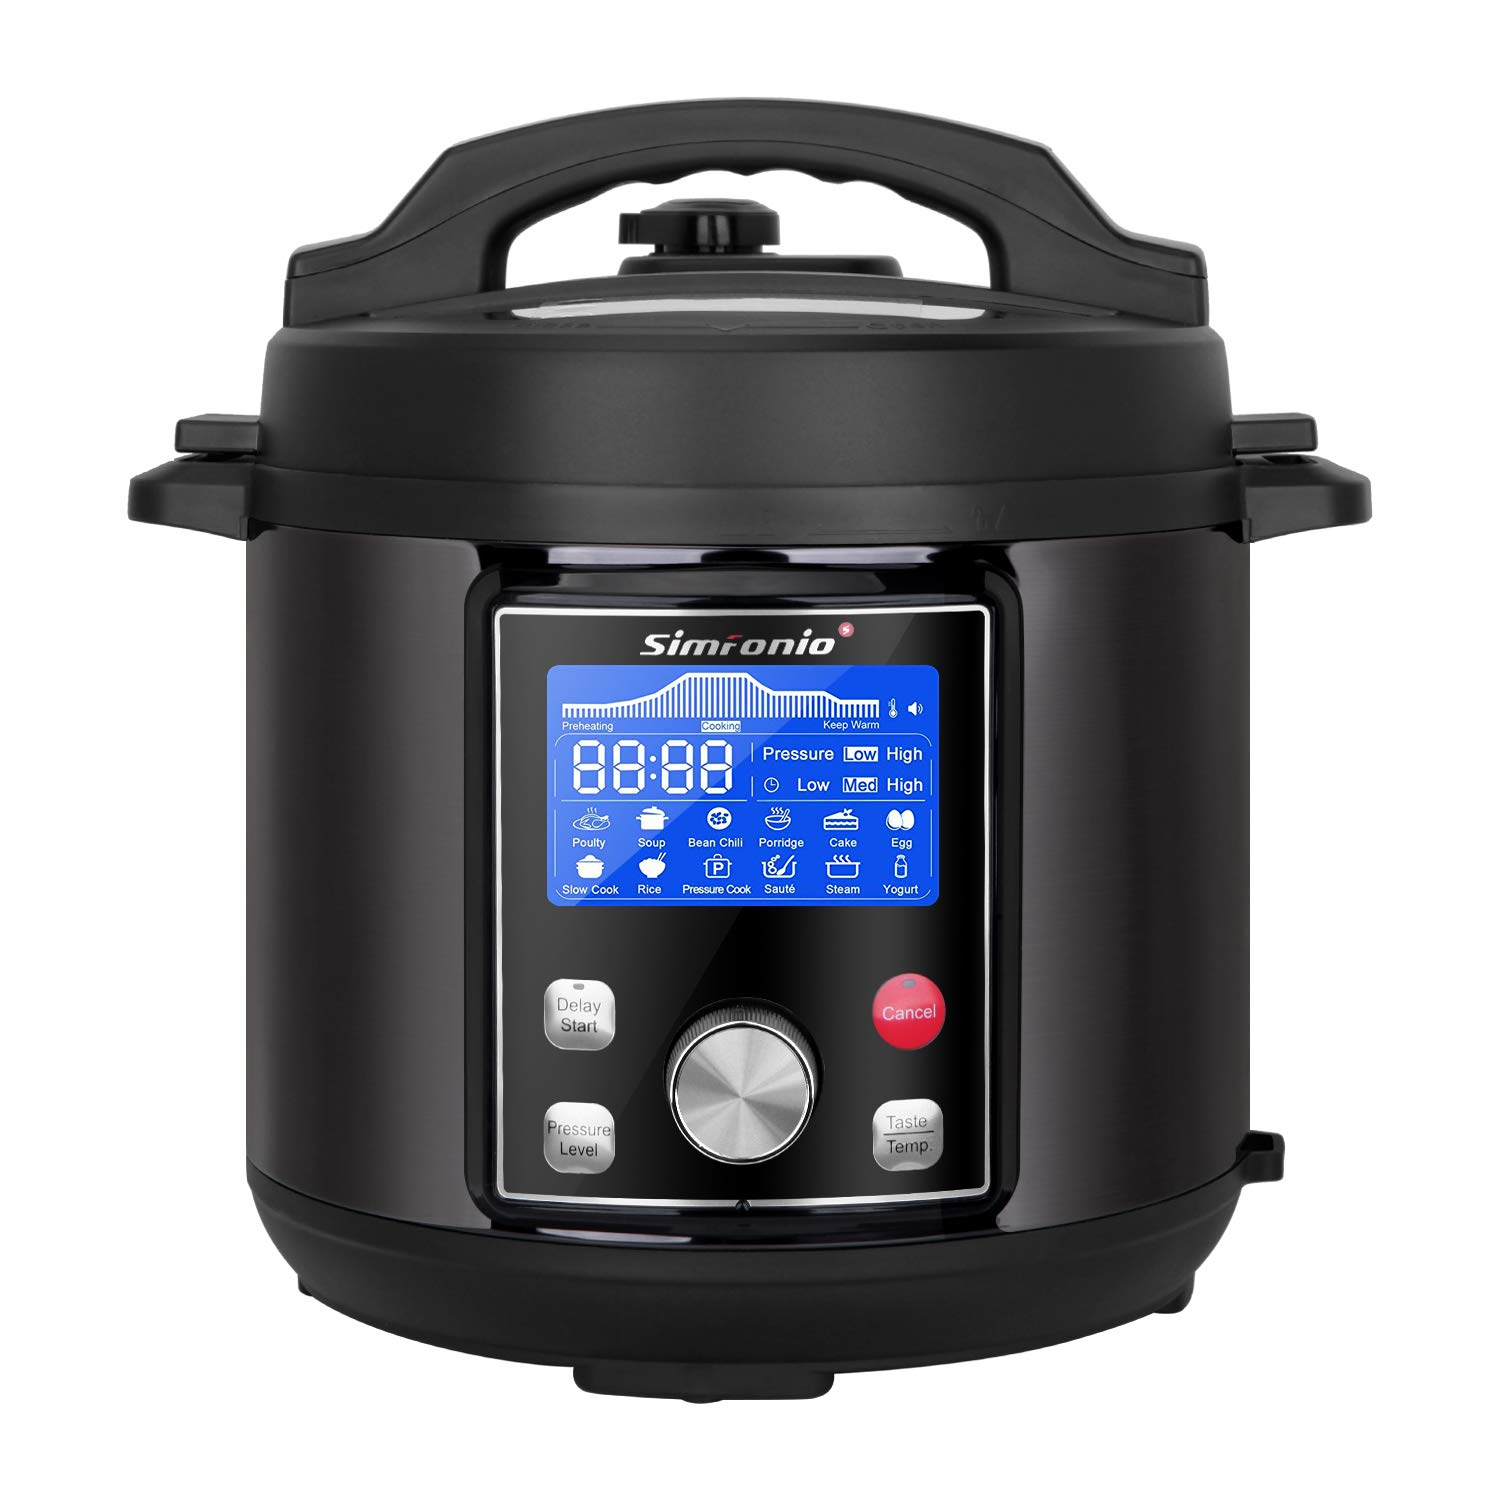 Best Rice Cooker 2020.Best Pressure Cooker Reviews 2020 Must Read Before Buying